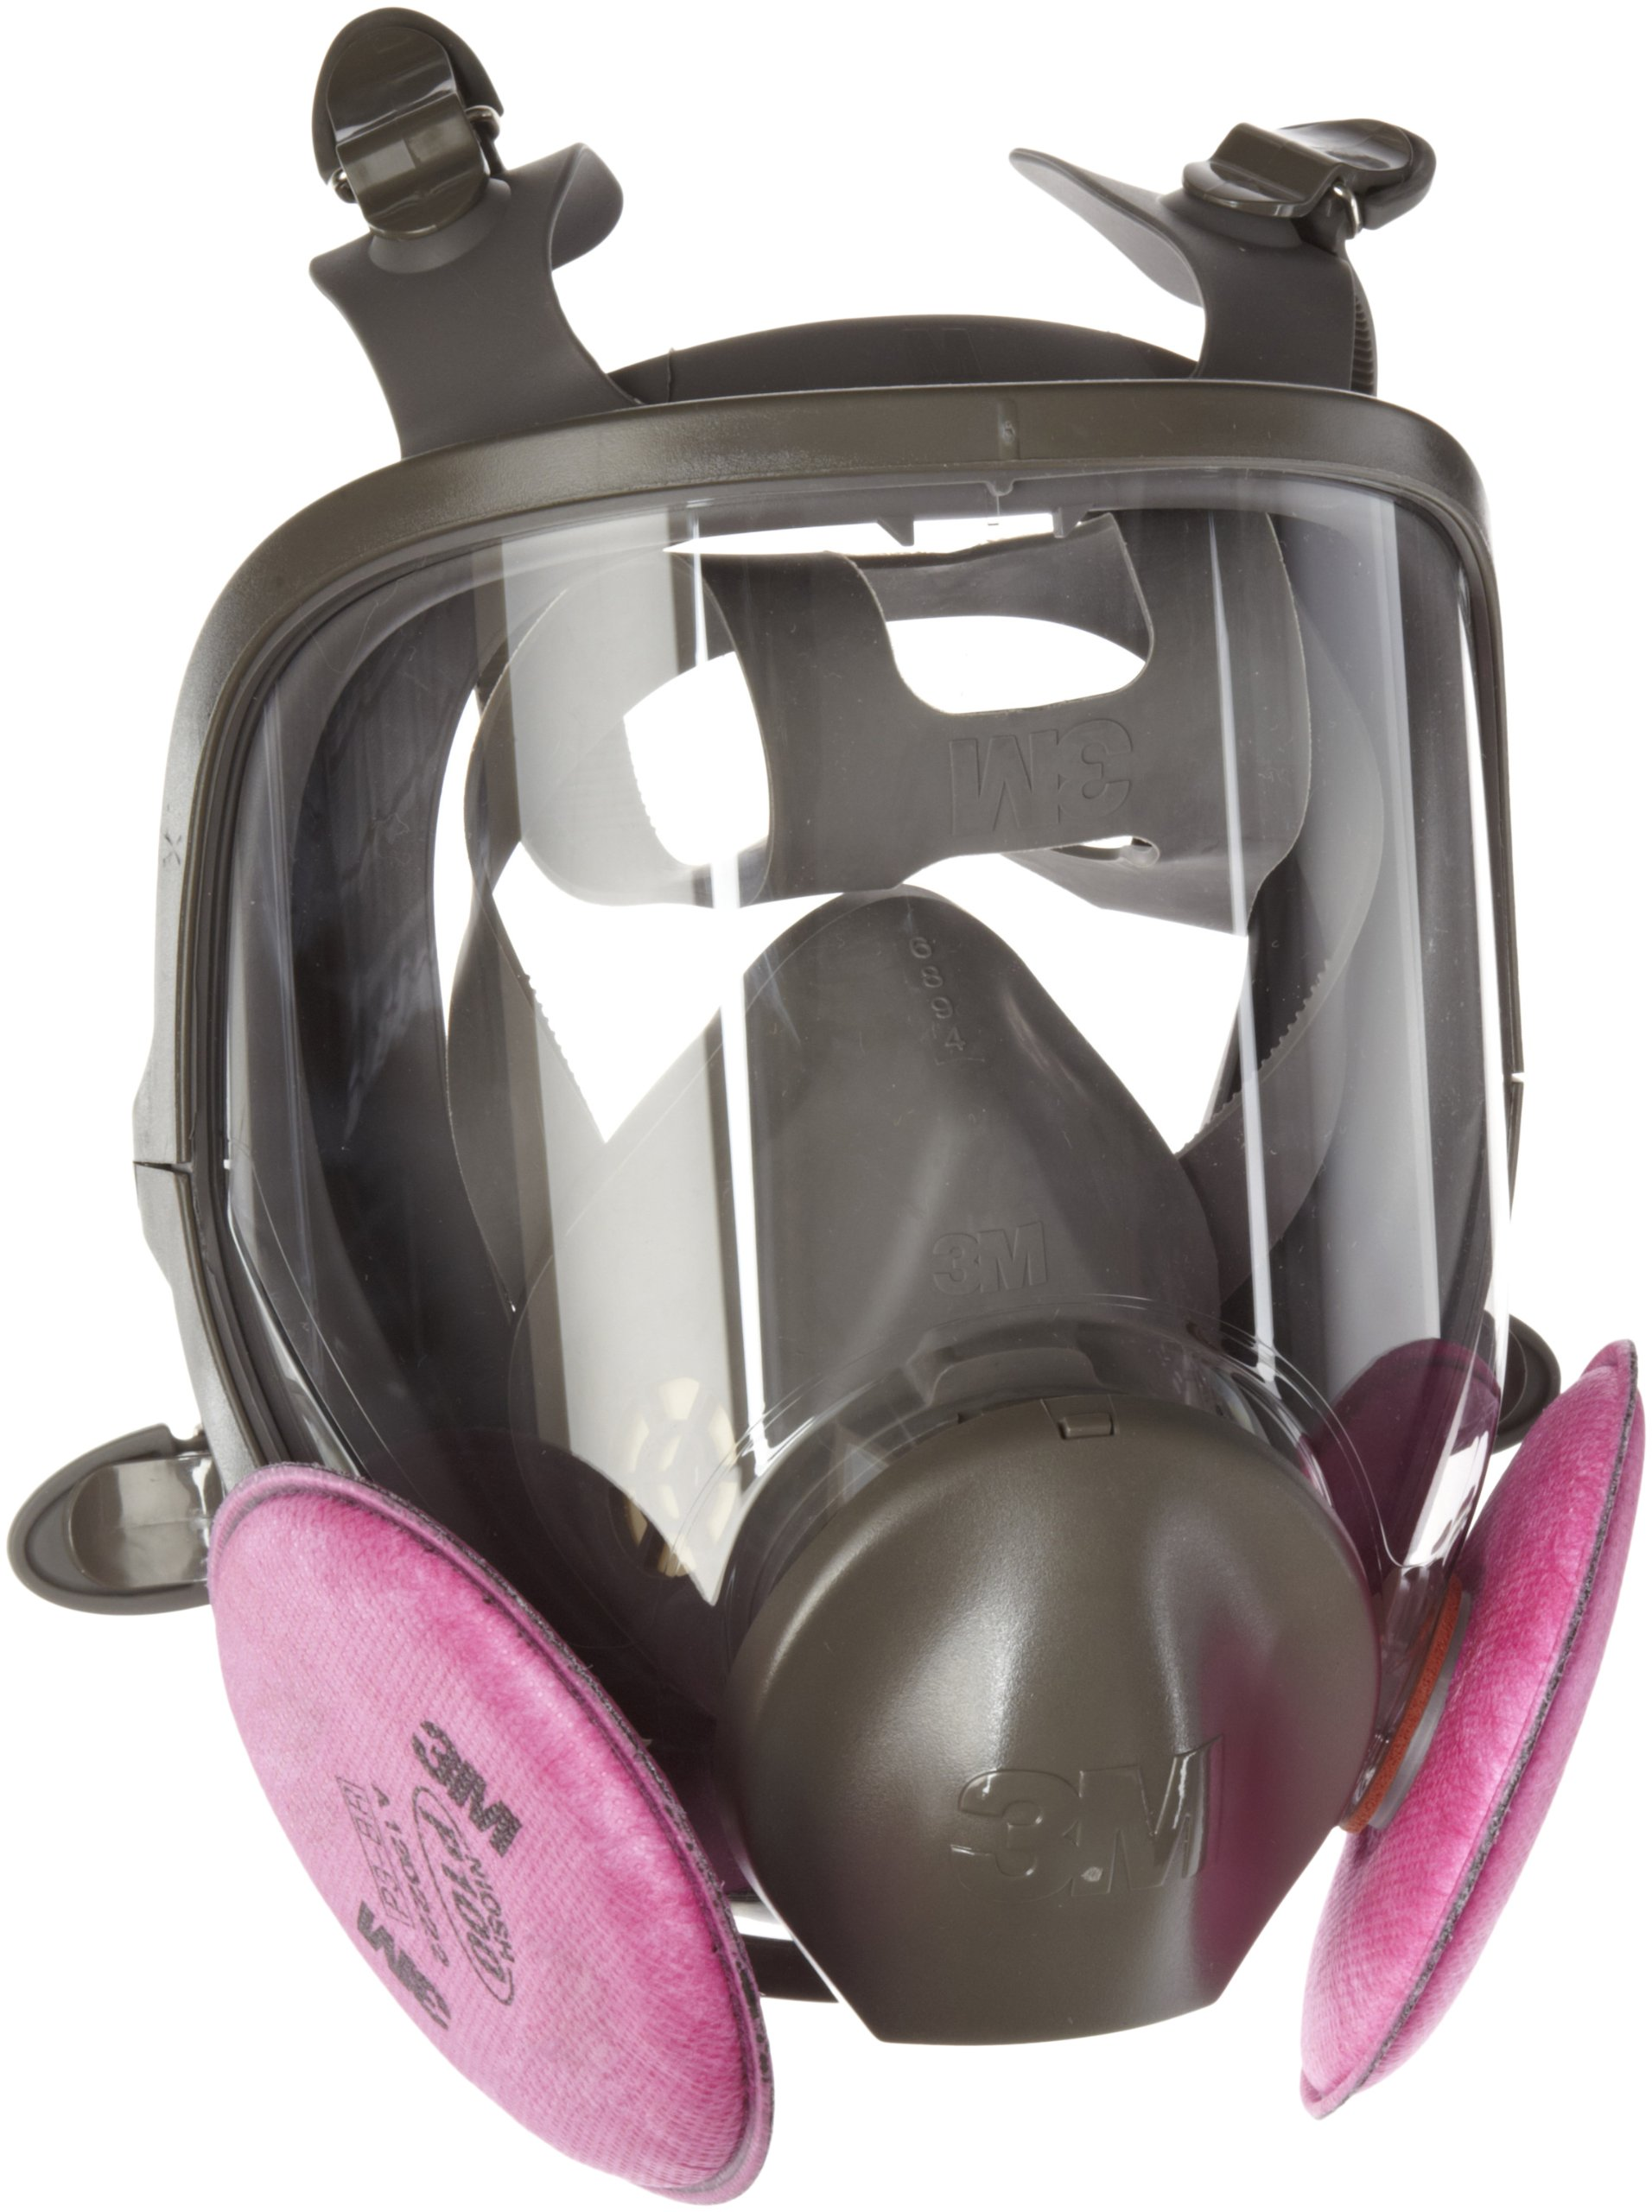 3M Mold Remediation Respirator Kit 69097, Respiratory Protection, Large (1 Kit) by 3M Personal Protective Equipment